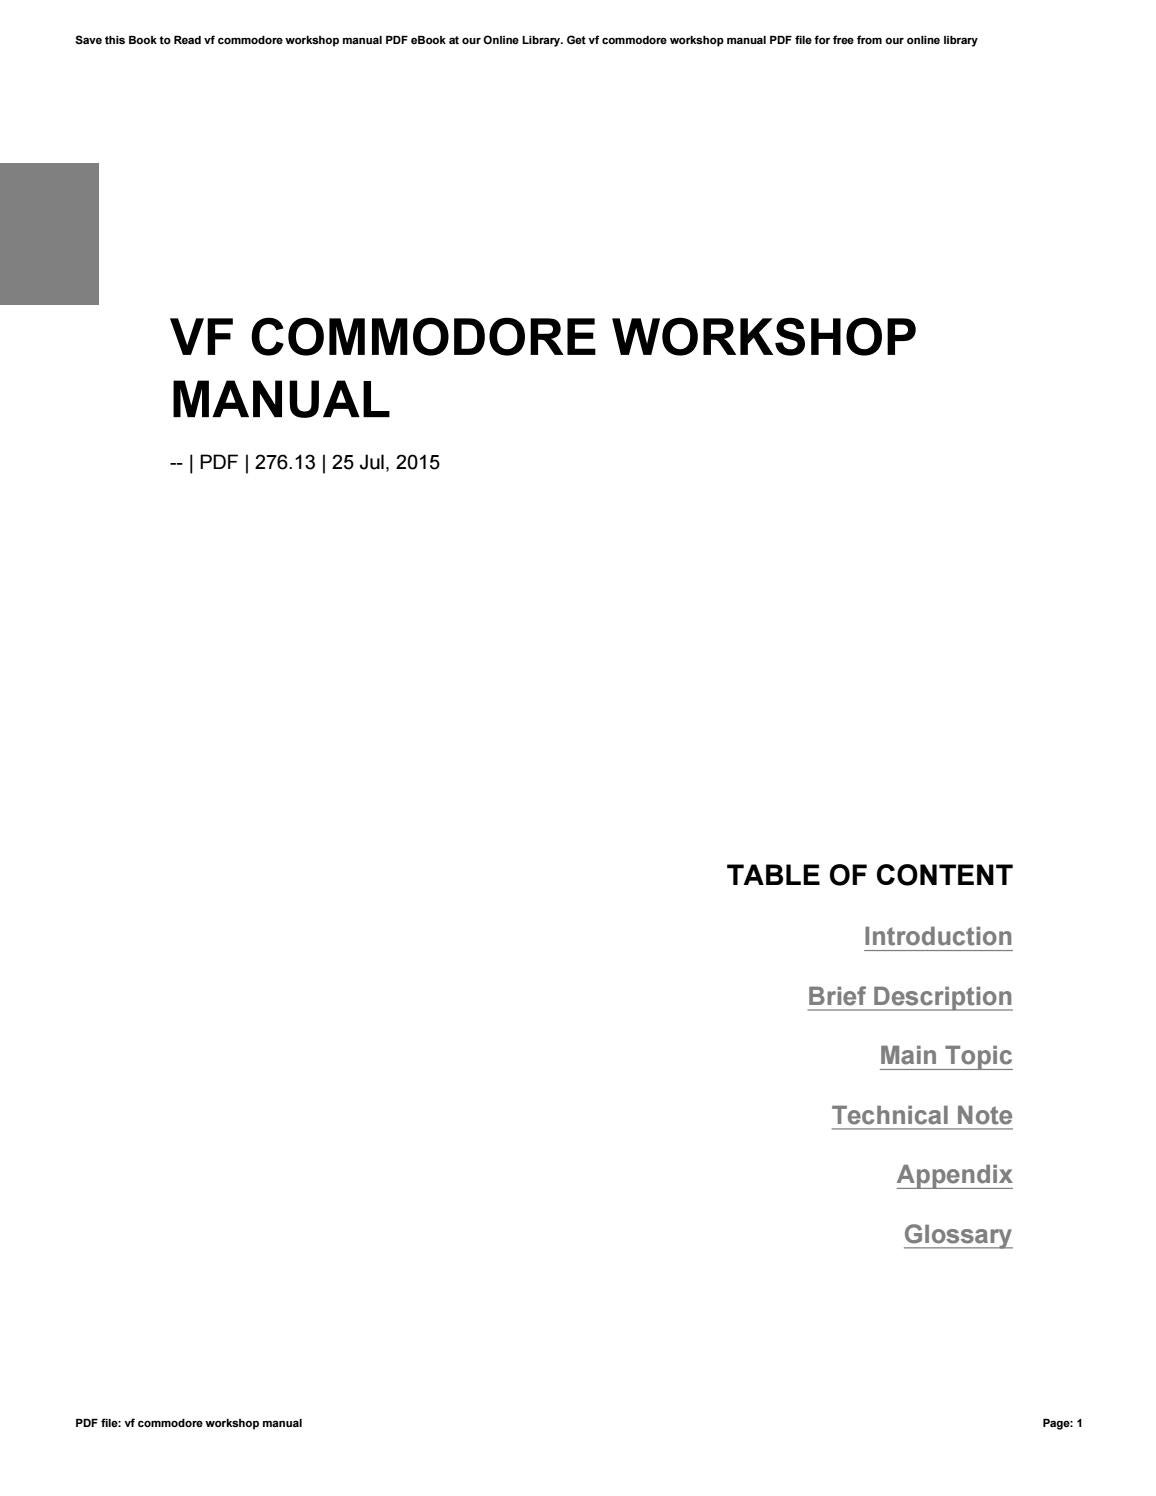 Free ve commodore workshop manual array vf commodore workshop manual by jklasdf5 issuu rh issuu fandeluxe Choice Image